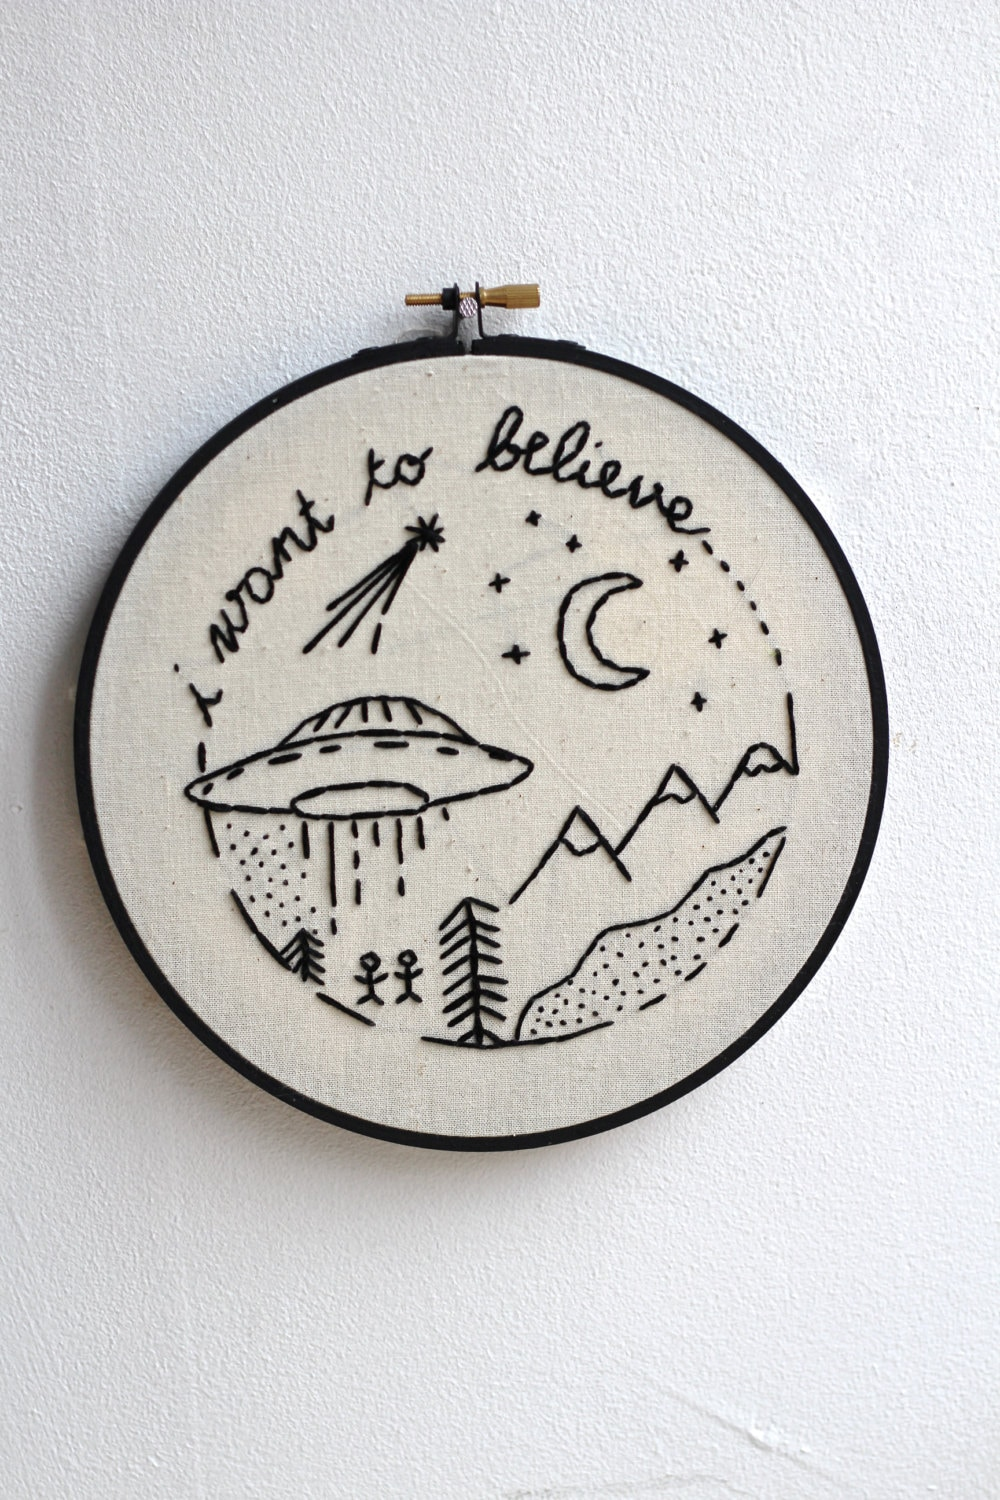 I want to believe embroidery hoop by twomoonsandhannais on